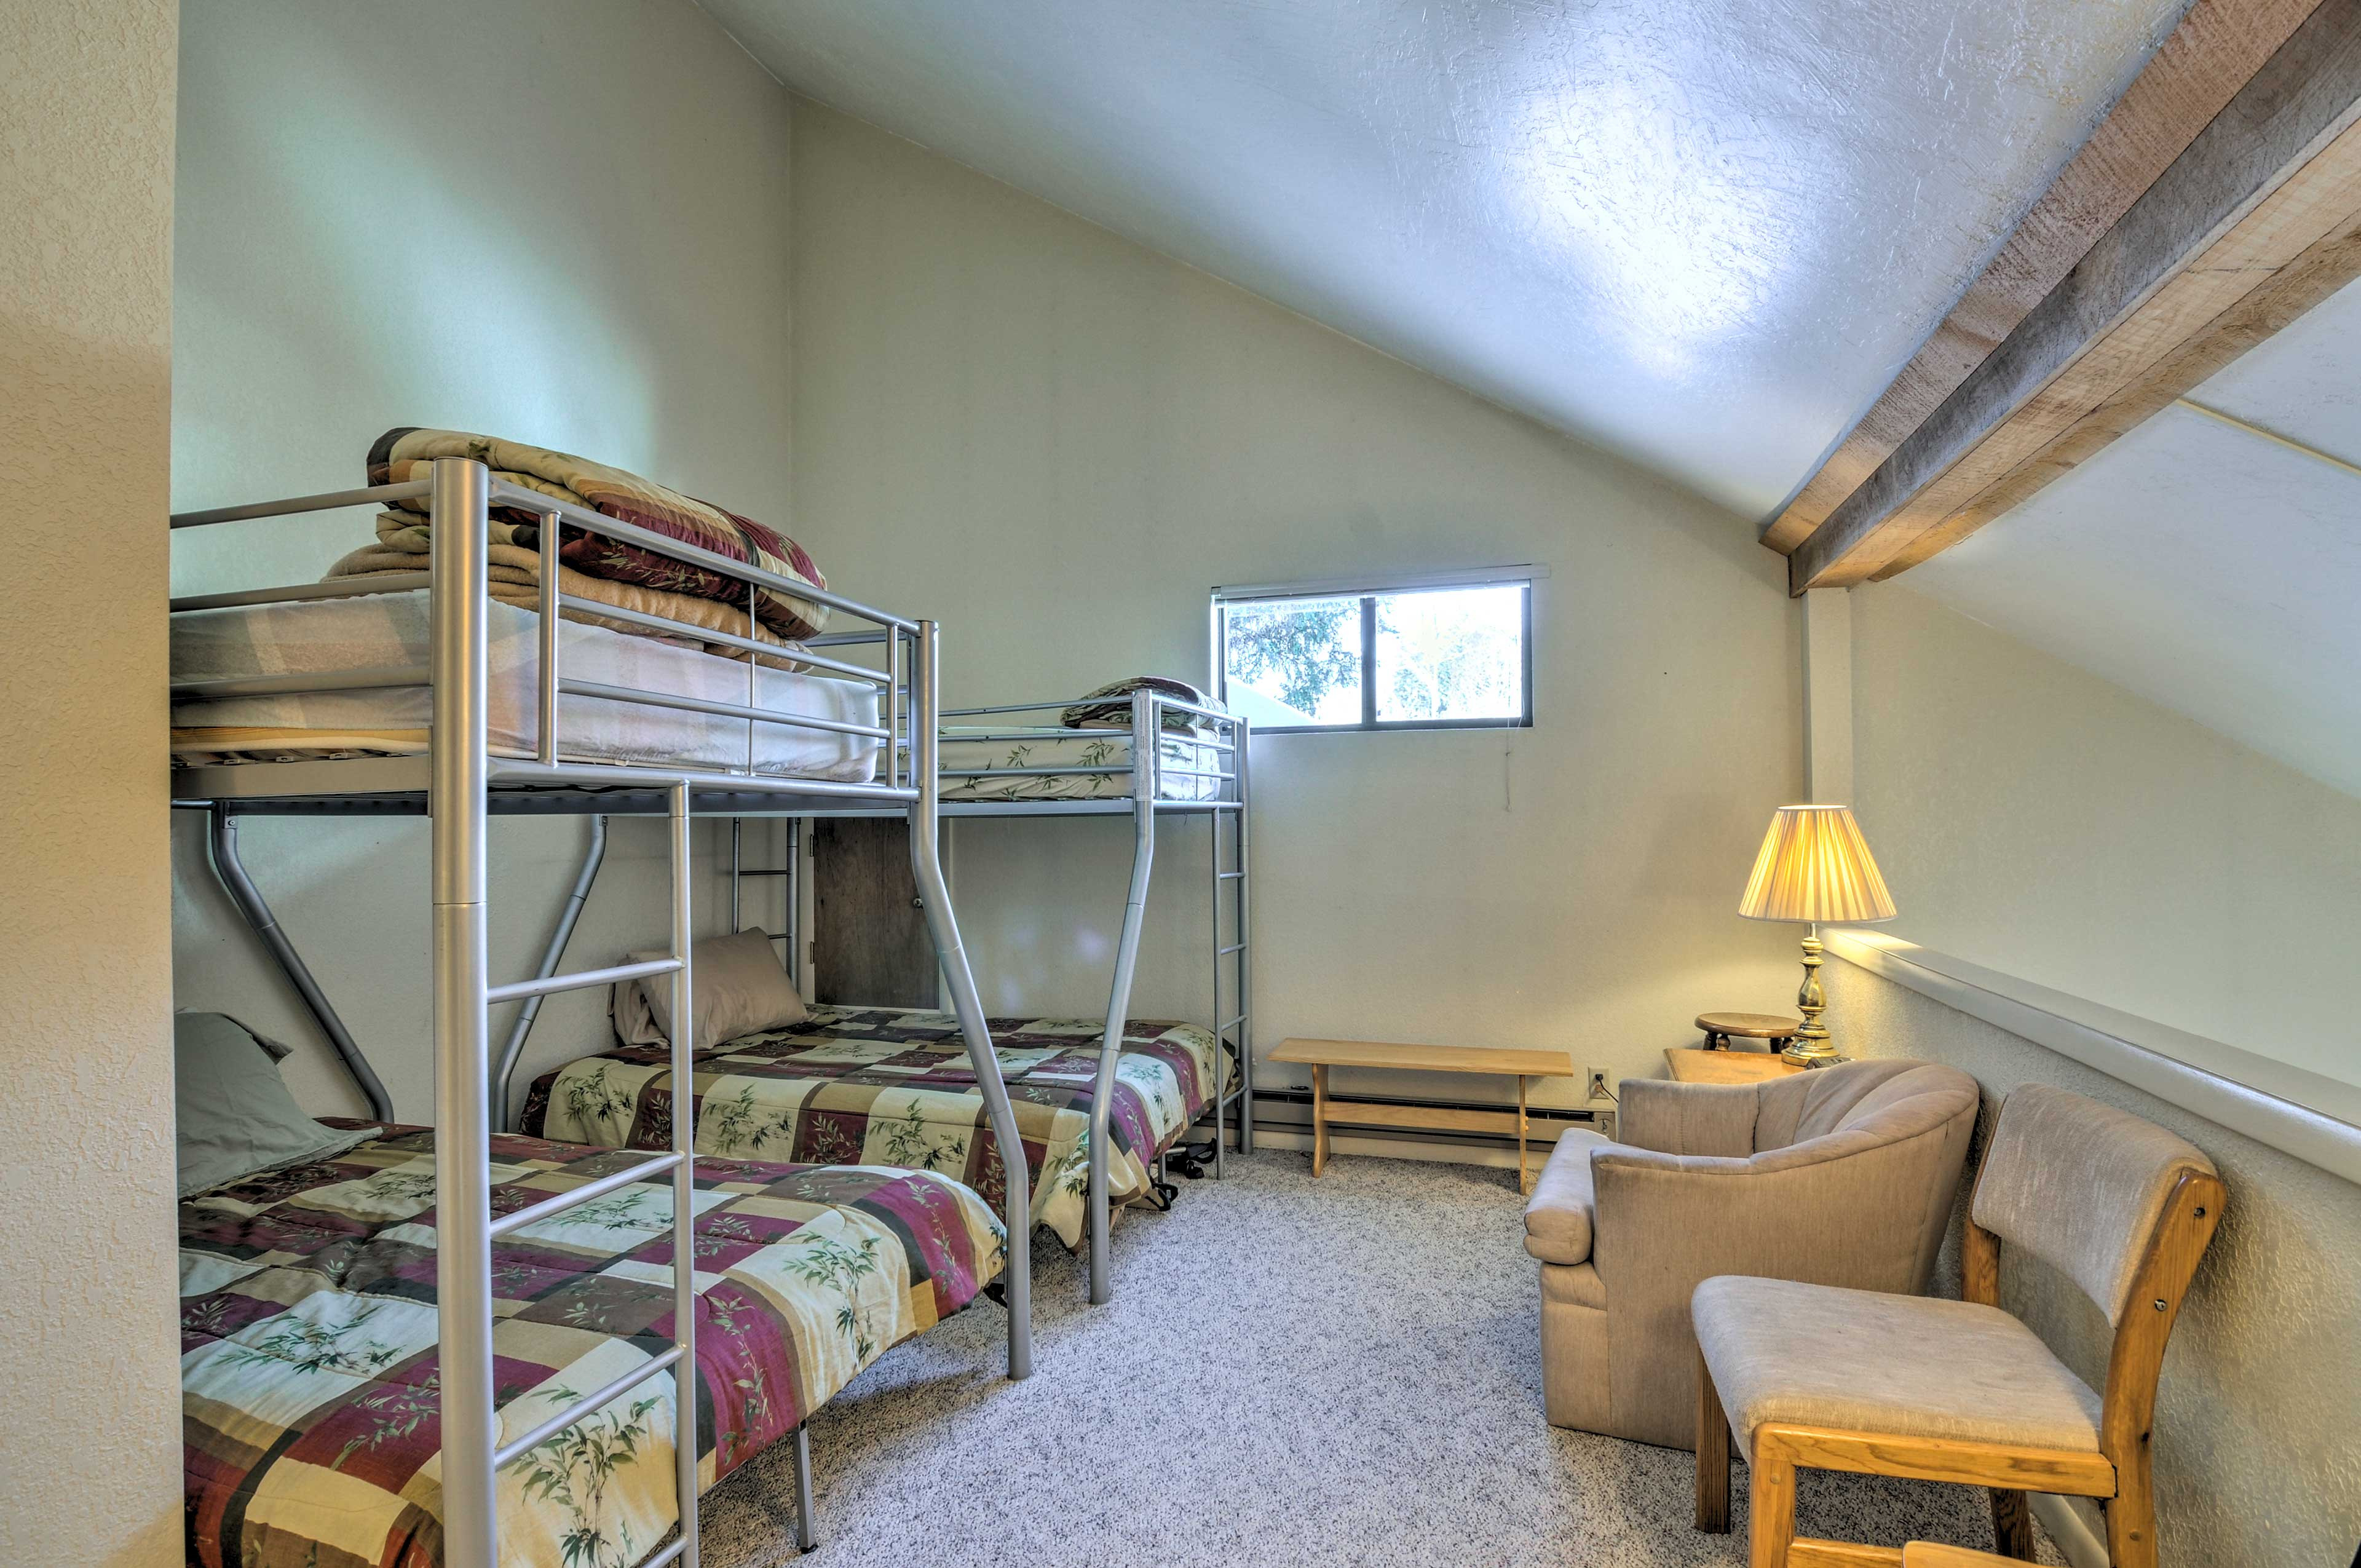 The second bedroom is located upstairs.